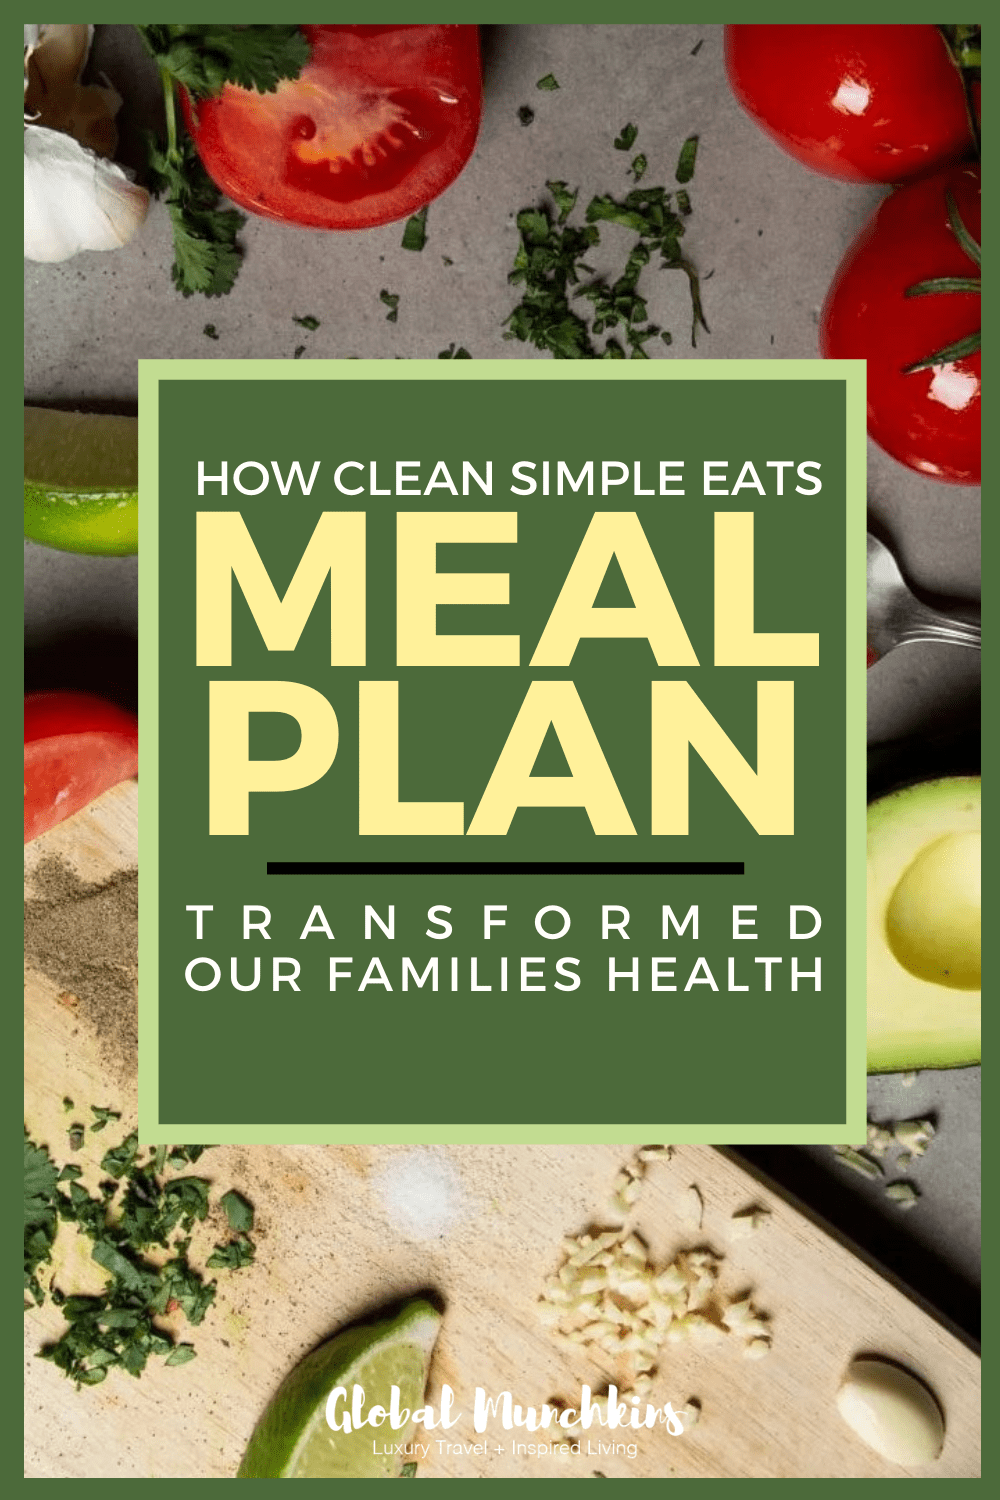 HOW CLEAN SIMPLE EATS MEAL PLAN TRANSFORMED OUR FAMILIES HEALTH - Global Munchkins